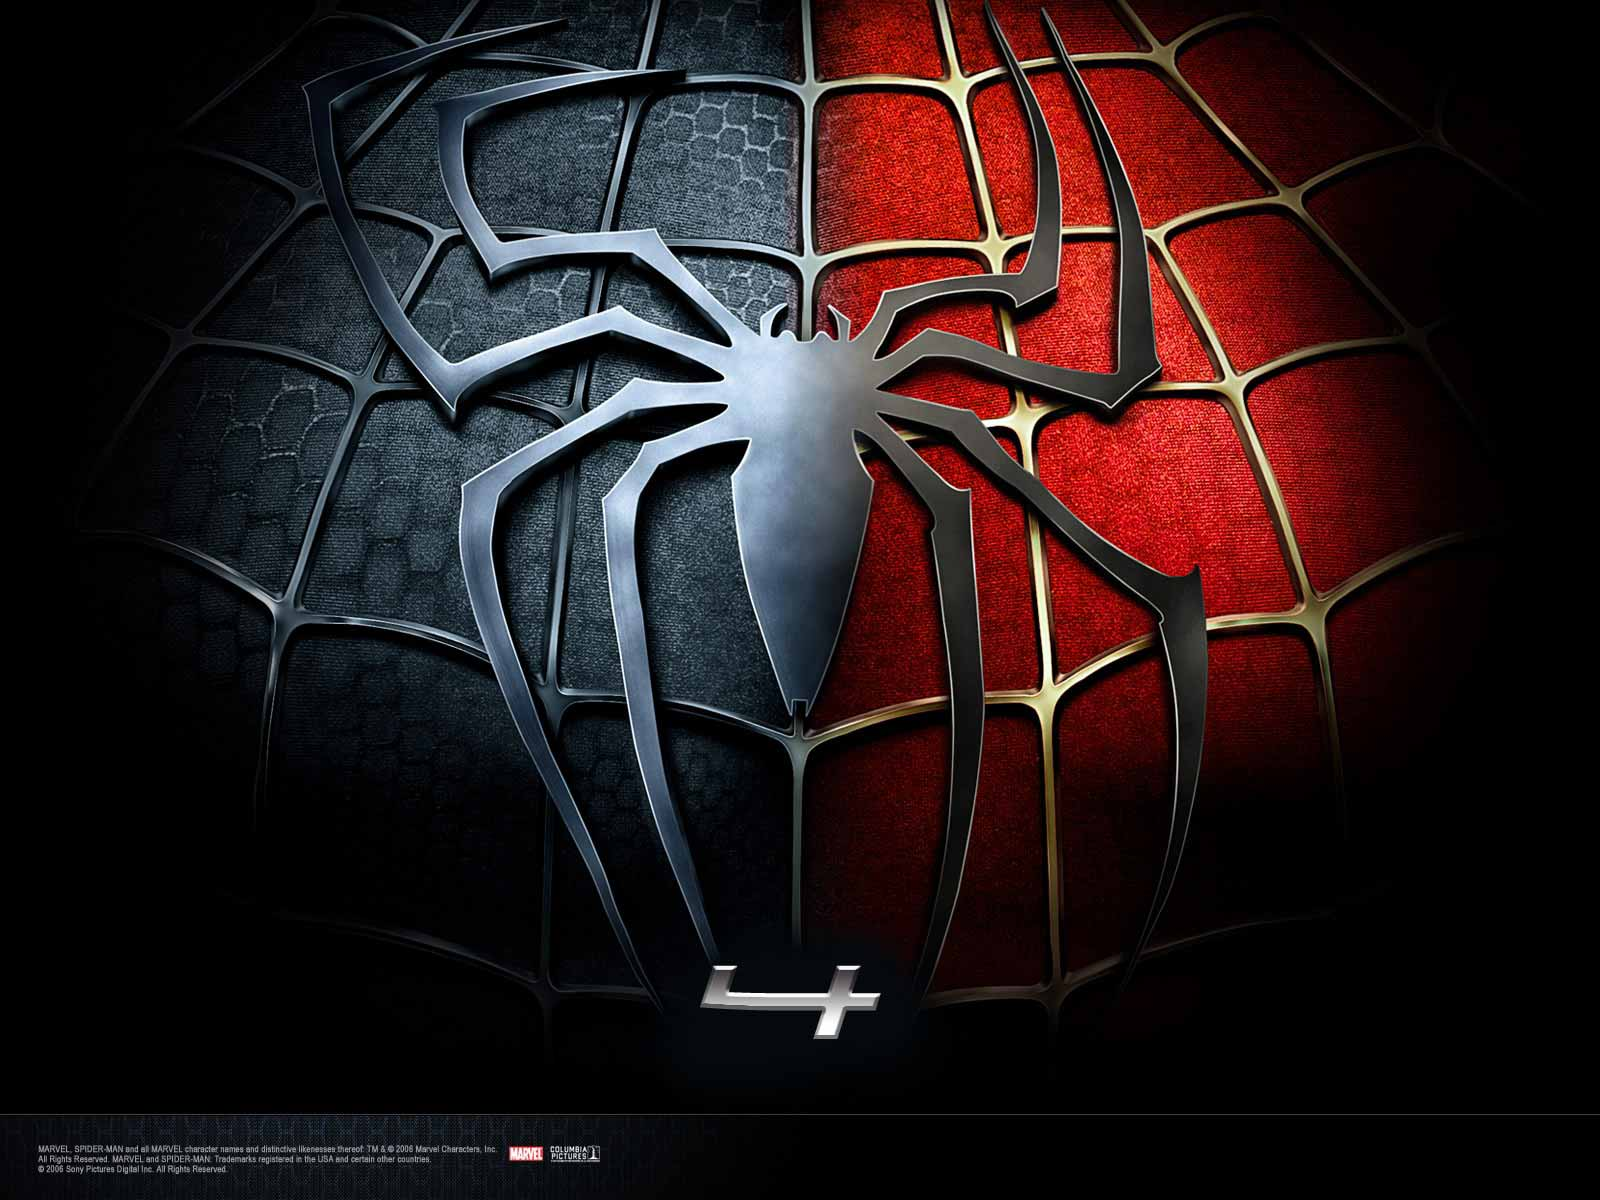 SPIDERMANFOUR: SPIDERMAN 4 HD WALLPAPERS